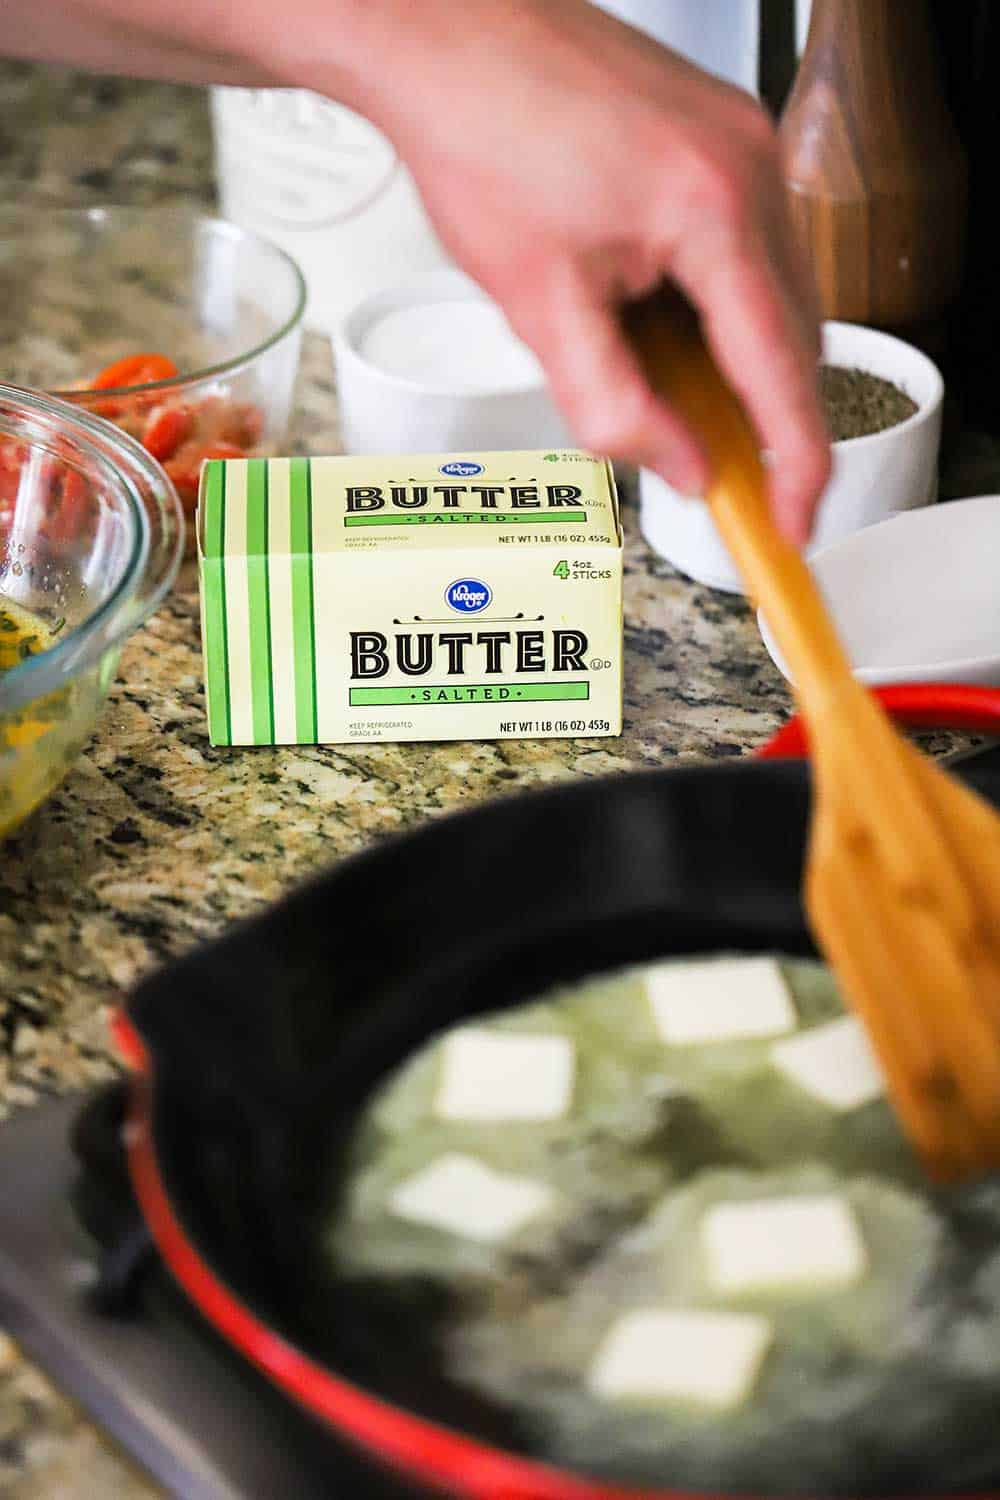 A person using a wooden spatula to help butter melt in a heated skillet all sitting in front of a box of Kroger salted butter.